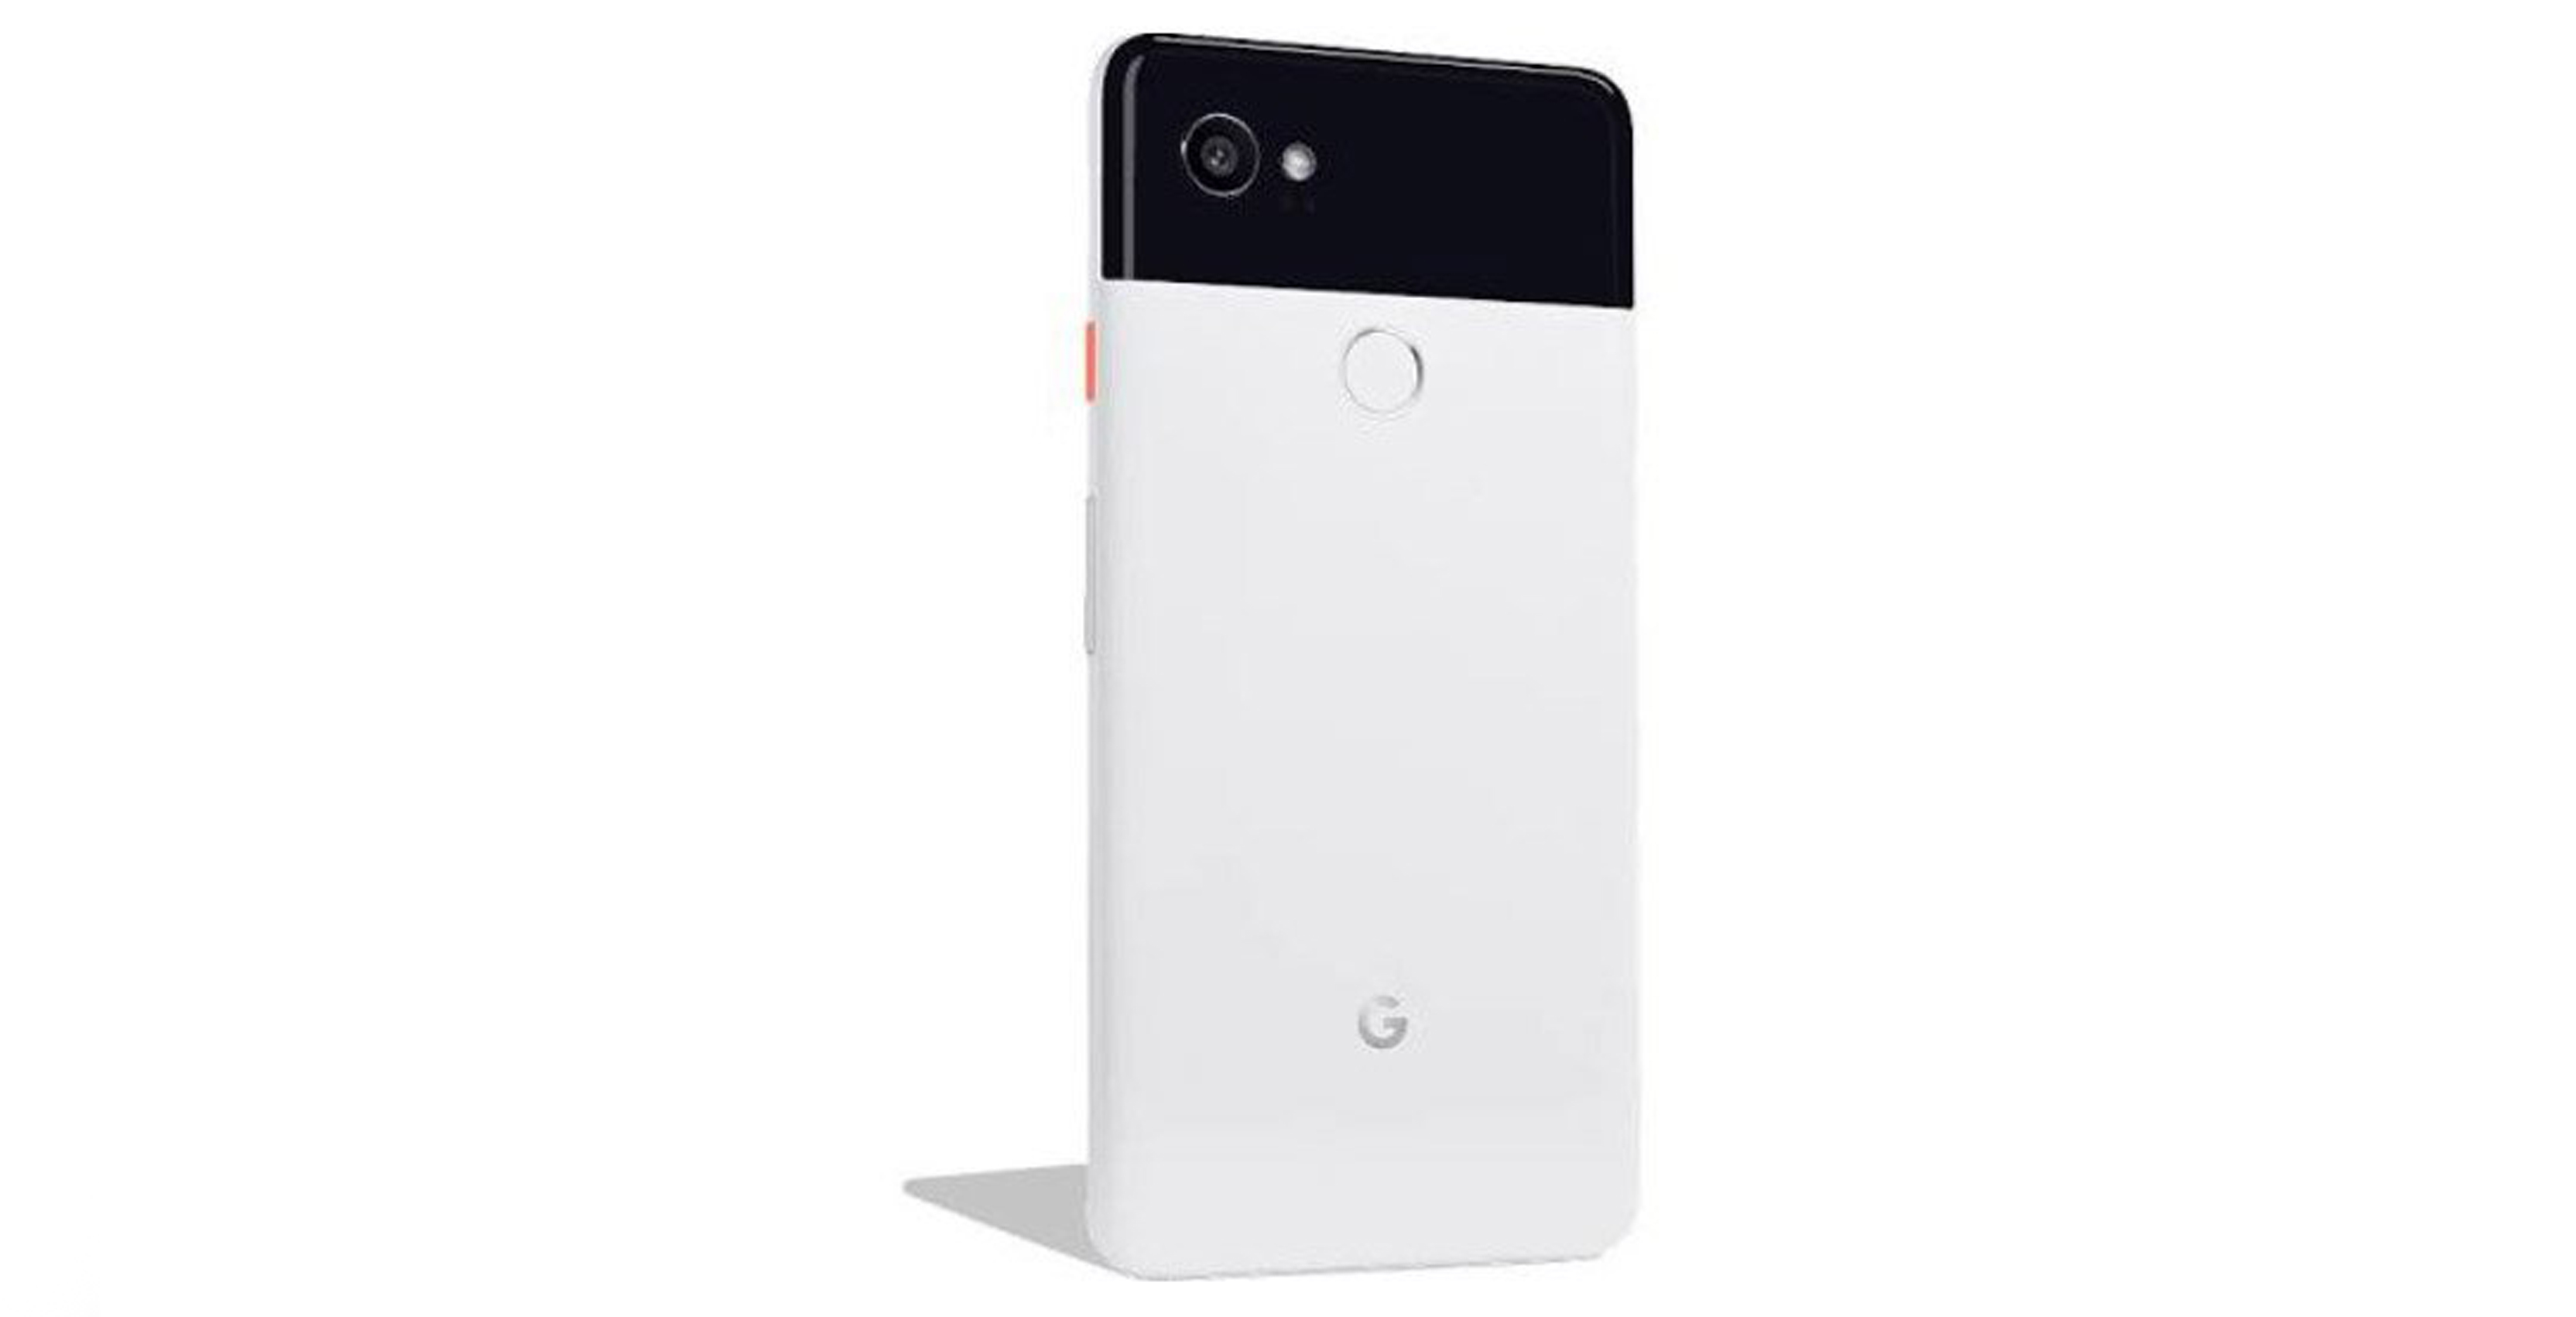 Leaked render of Pixel 2 XL smartphone